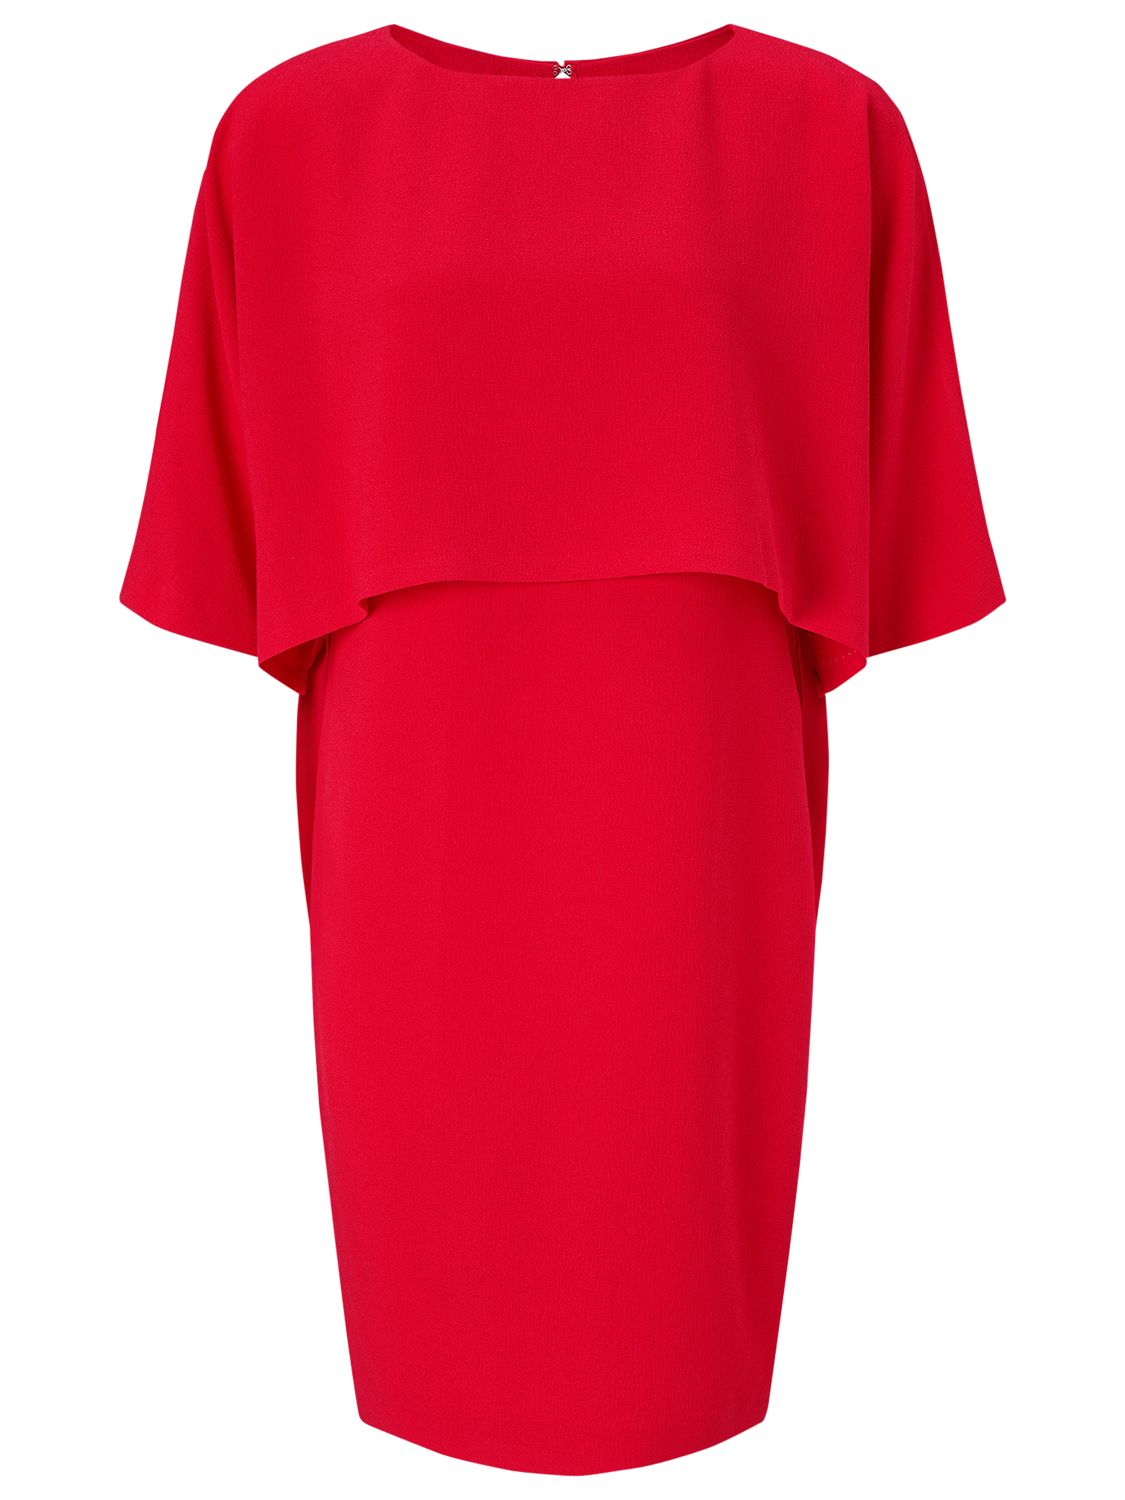 Adrianna Papell Adrianna Papell Draped Blouson Sheath Dress, Lipstick Red